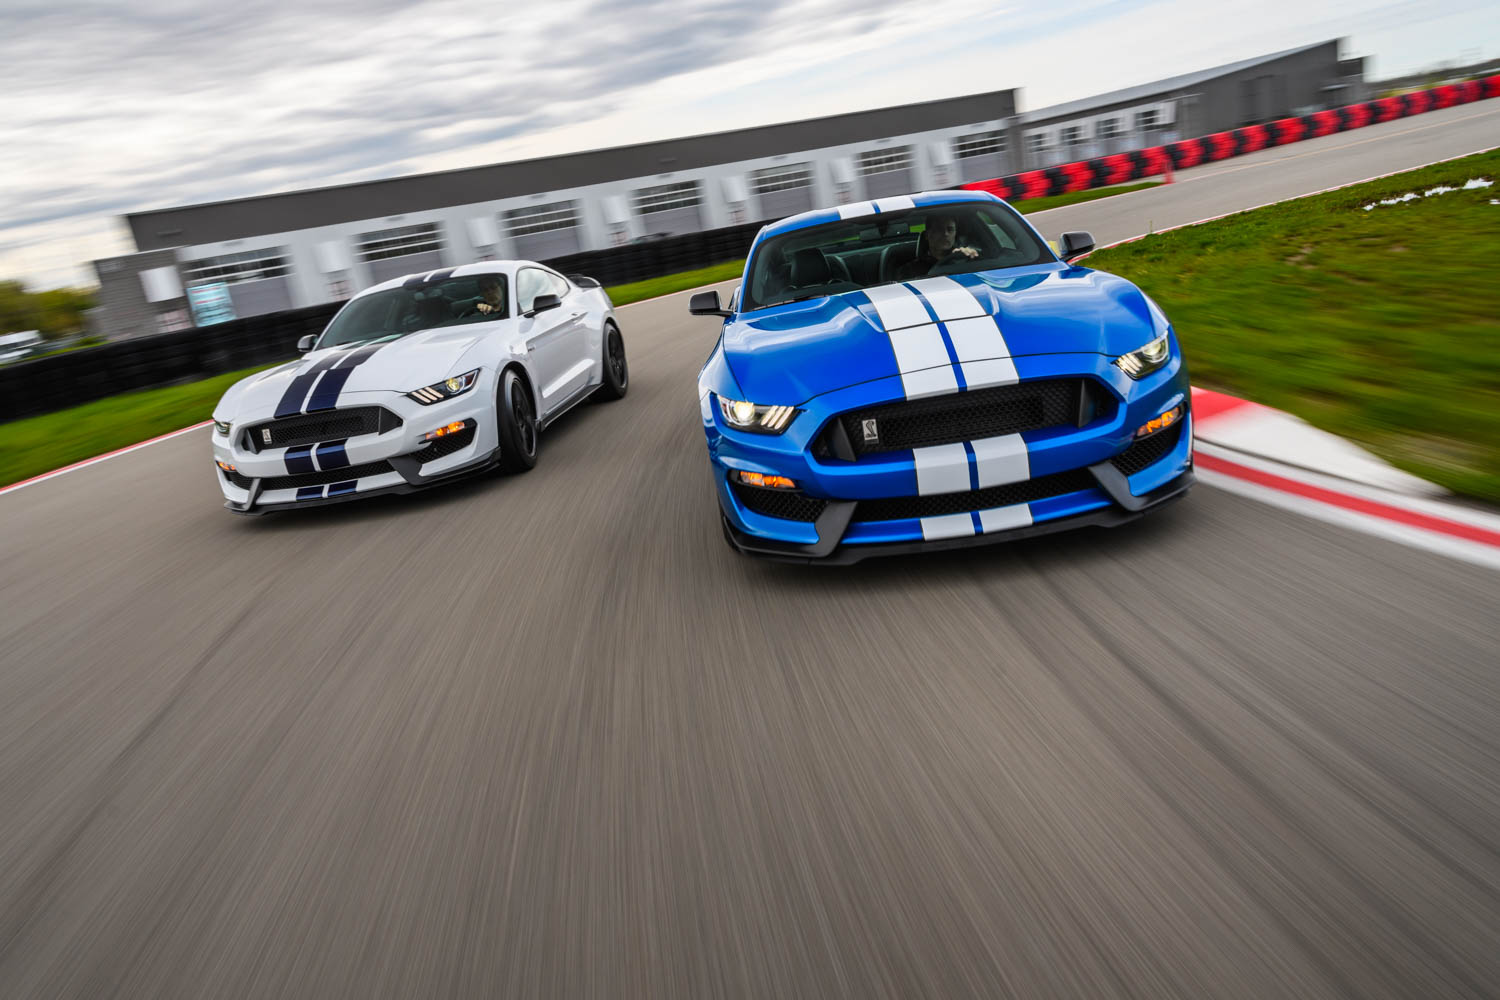 2019 Ford Mustang Shelby GT350 driving